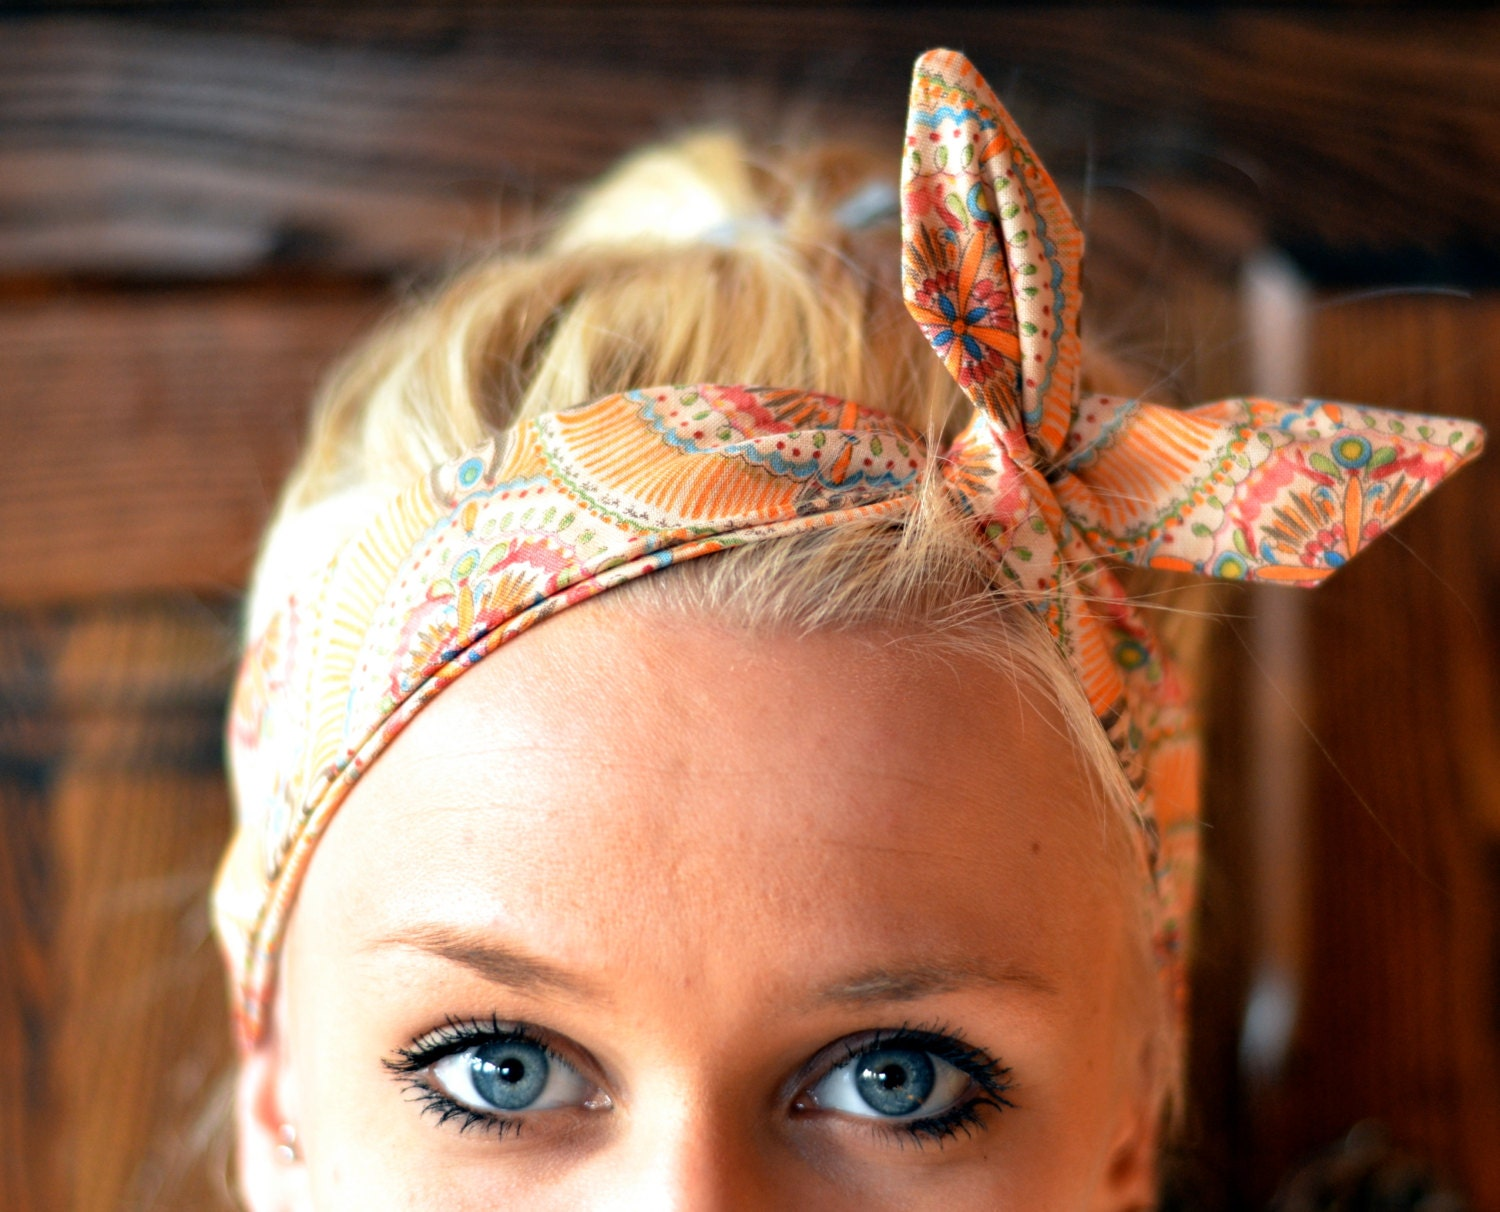 Spring Peach Structured Dolly Bow Headwrap - Ikat Turban